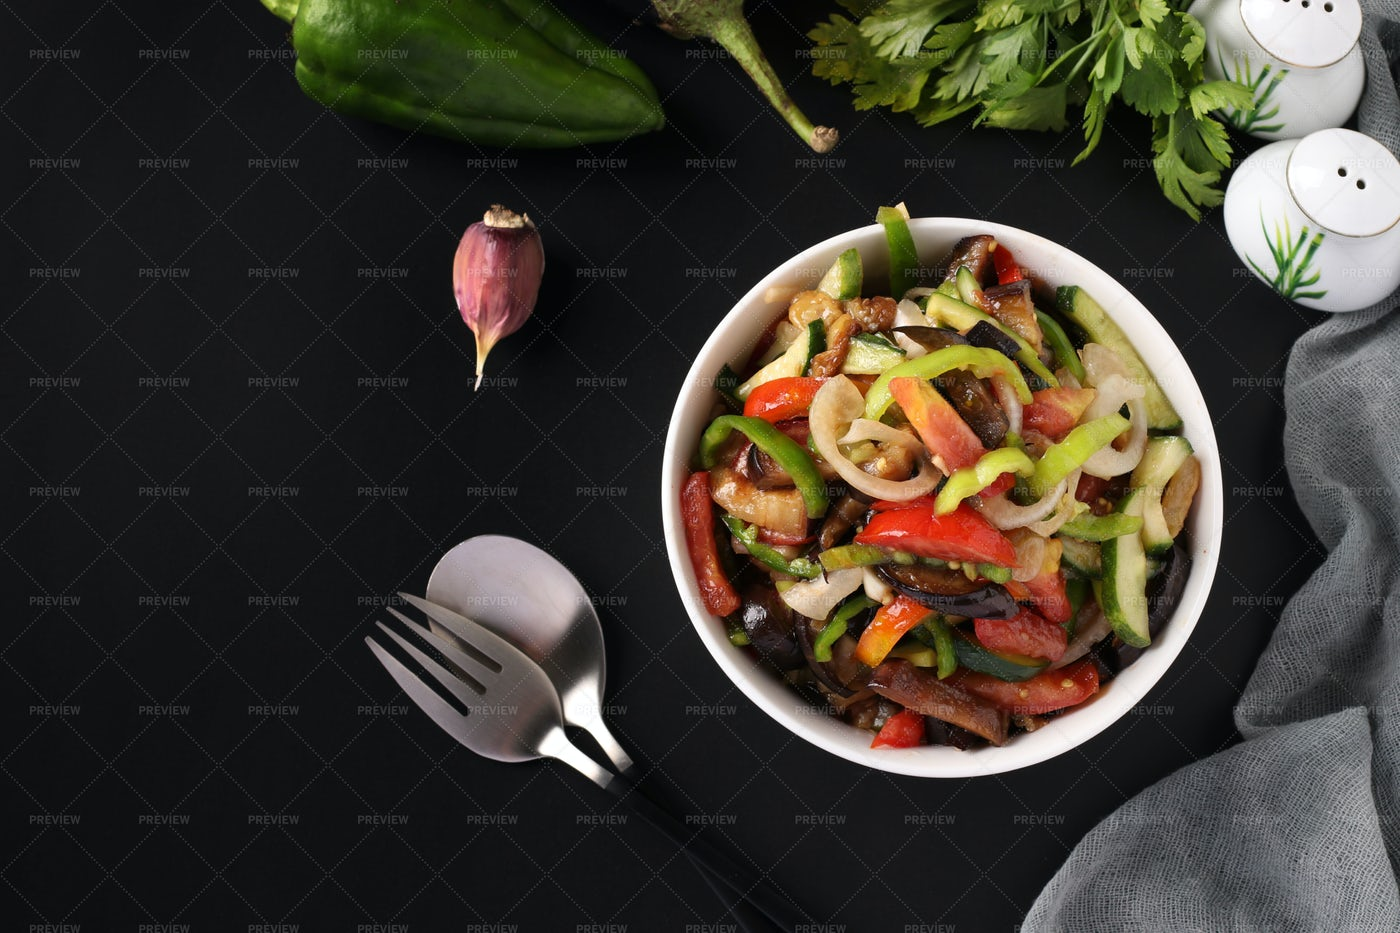 Salad With Eggplant, Tomatoes, Peppers: Stock Photos